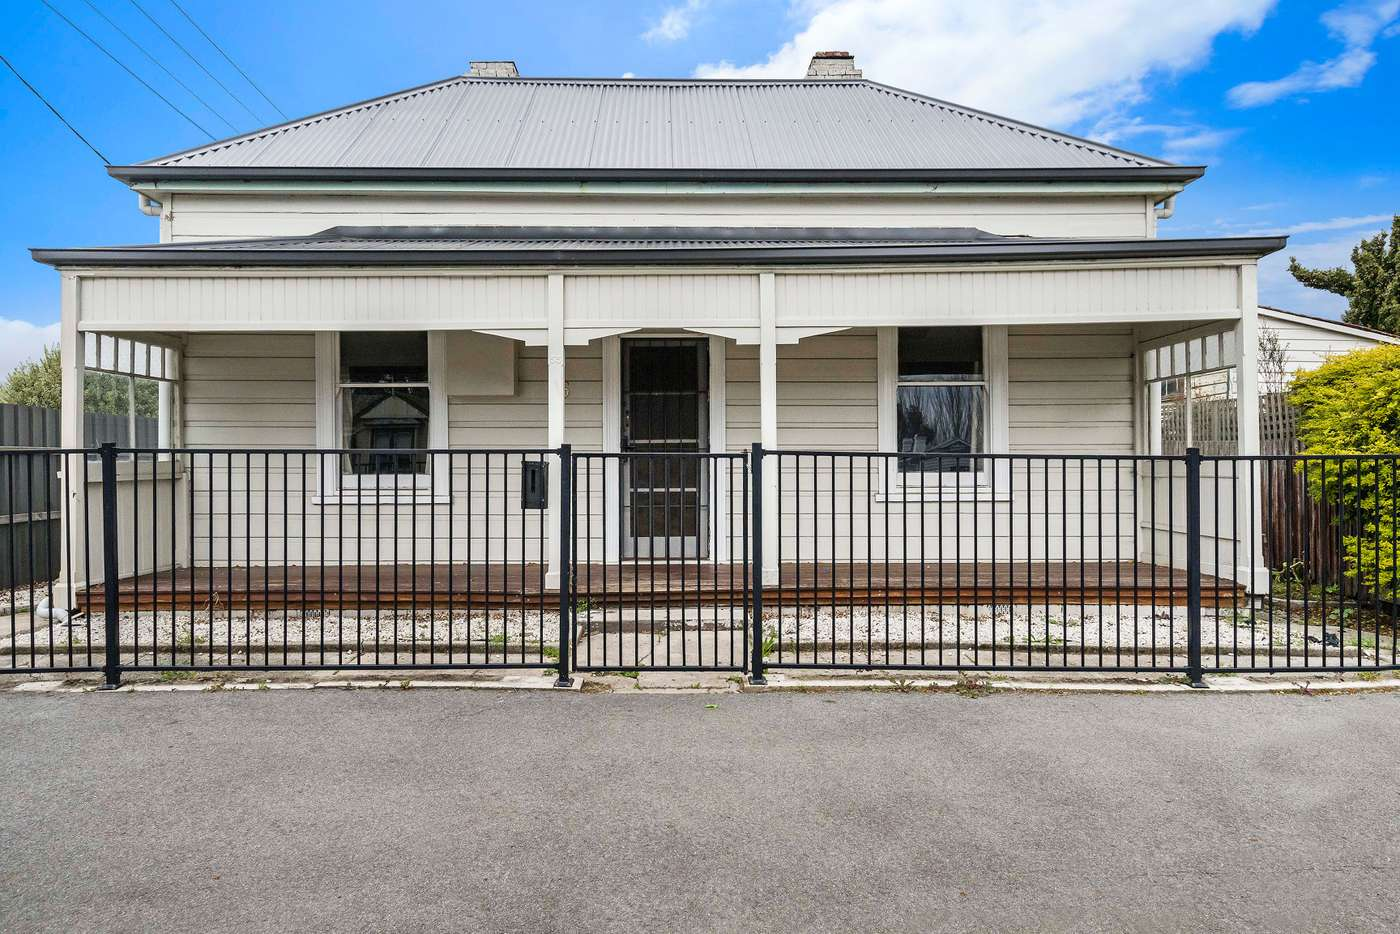 Main view of Homely house listing, 55 Dry Street, Invermay TAS 7248